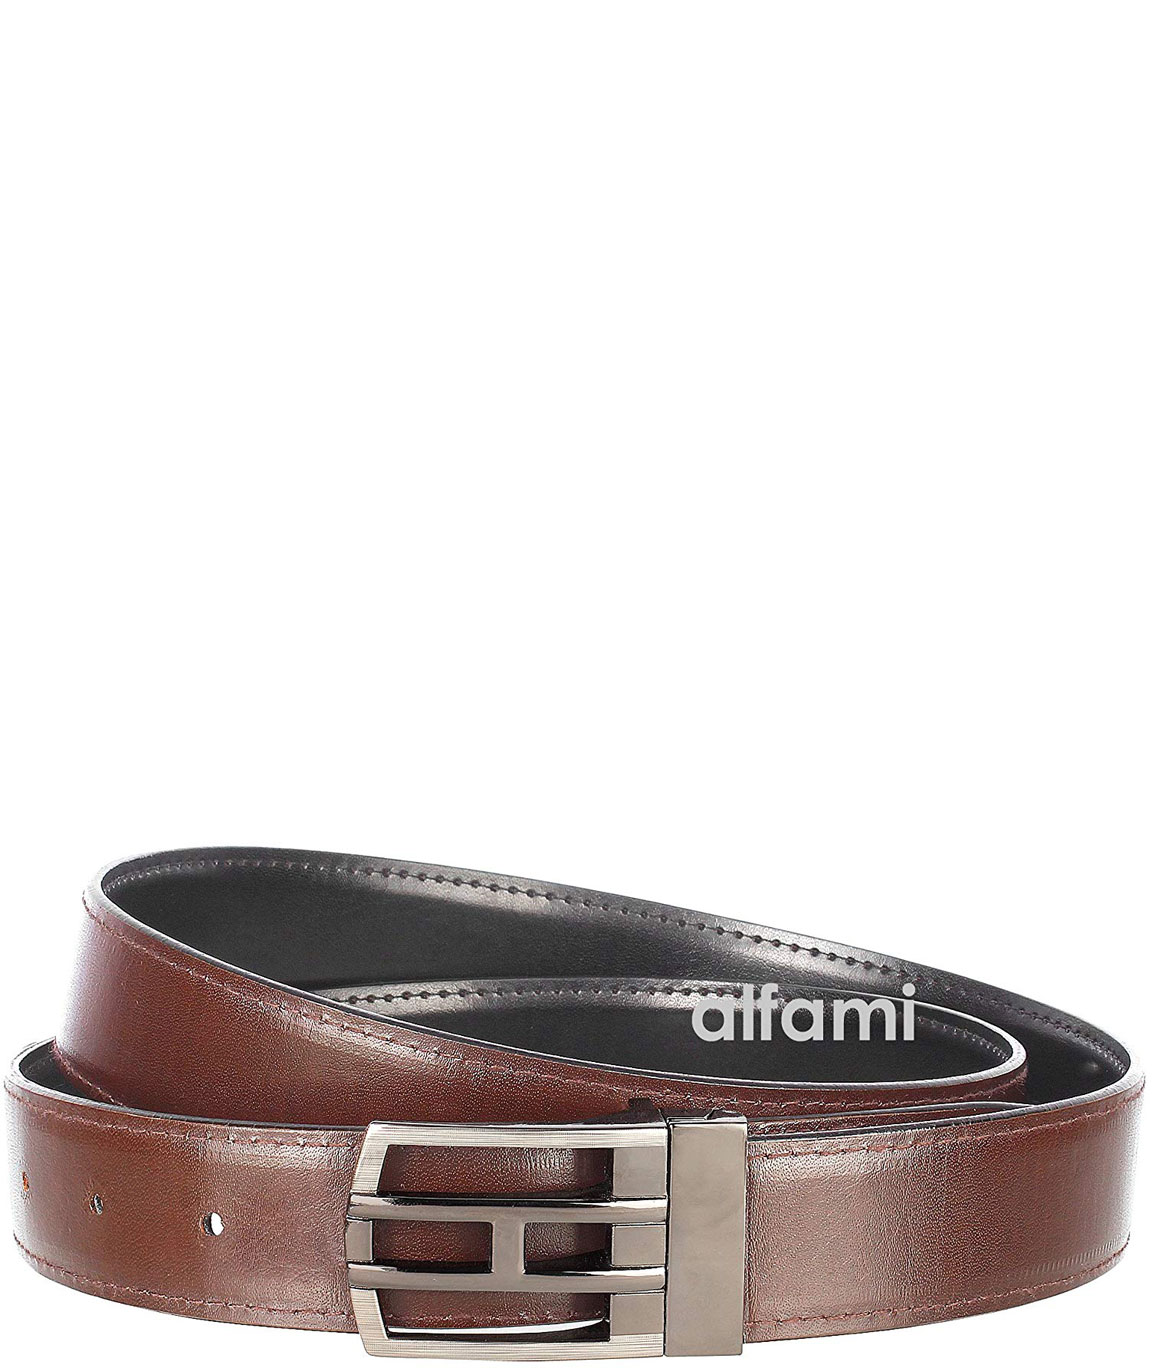 Alfami Mens PU Leather Belt Hook Buckle Smooth Texas Pattern Free size upto 42 inch waist (Pack of 1)